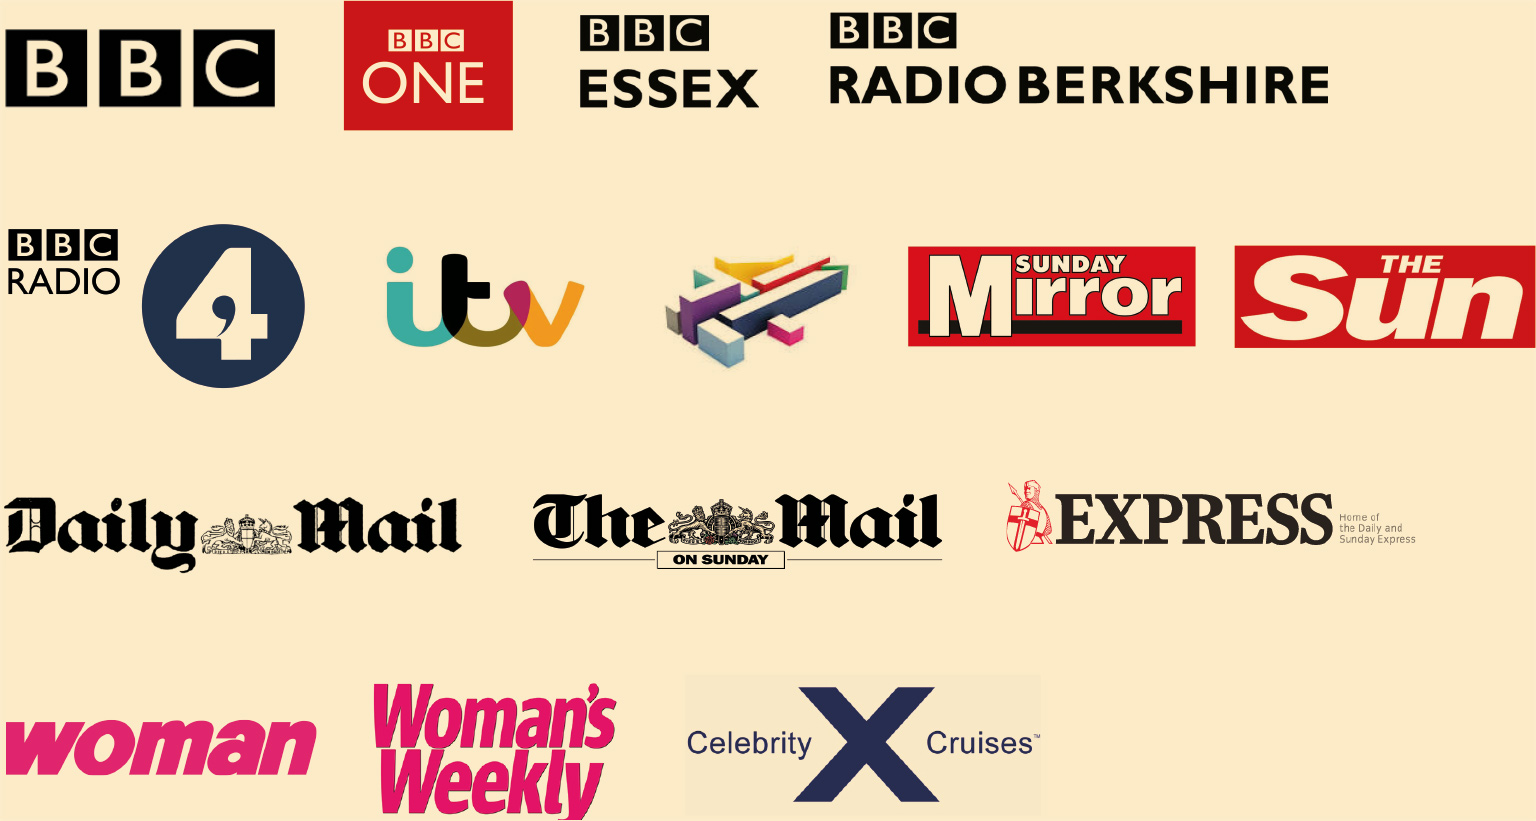 BBC, BBC One, BBC Essex, BBC Radio Berkshire, BBC Radio 4, itv, Channel 4, Sunday Mirror, The Sun, Daily Mail, The Mail On Sunday, Express, woman, Woman's Weekly, Celebrity Cruises